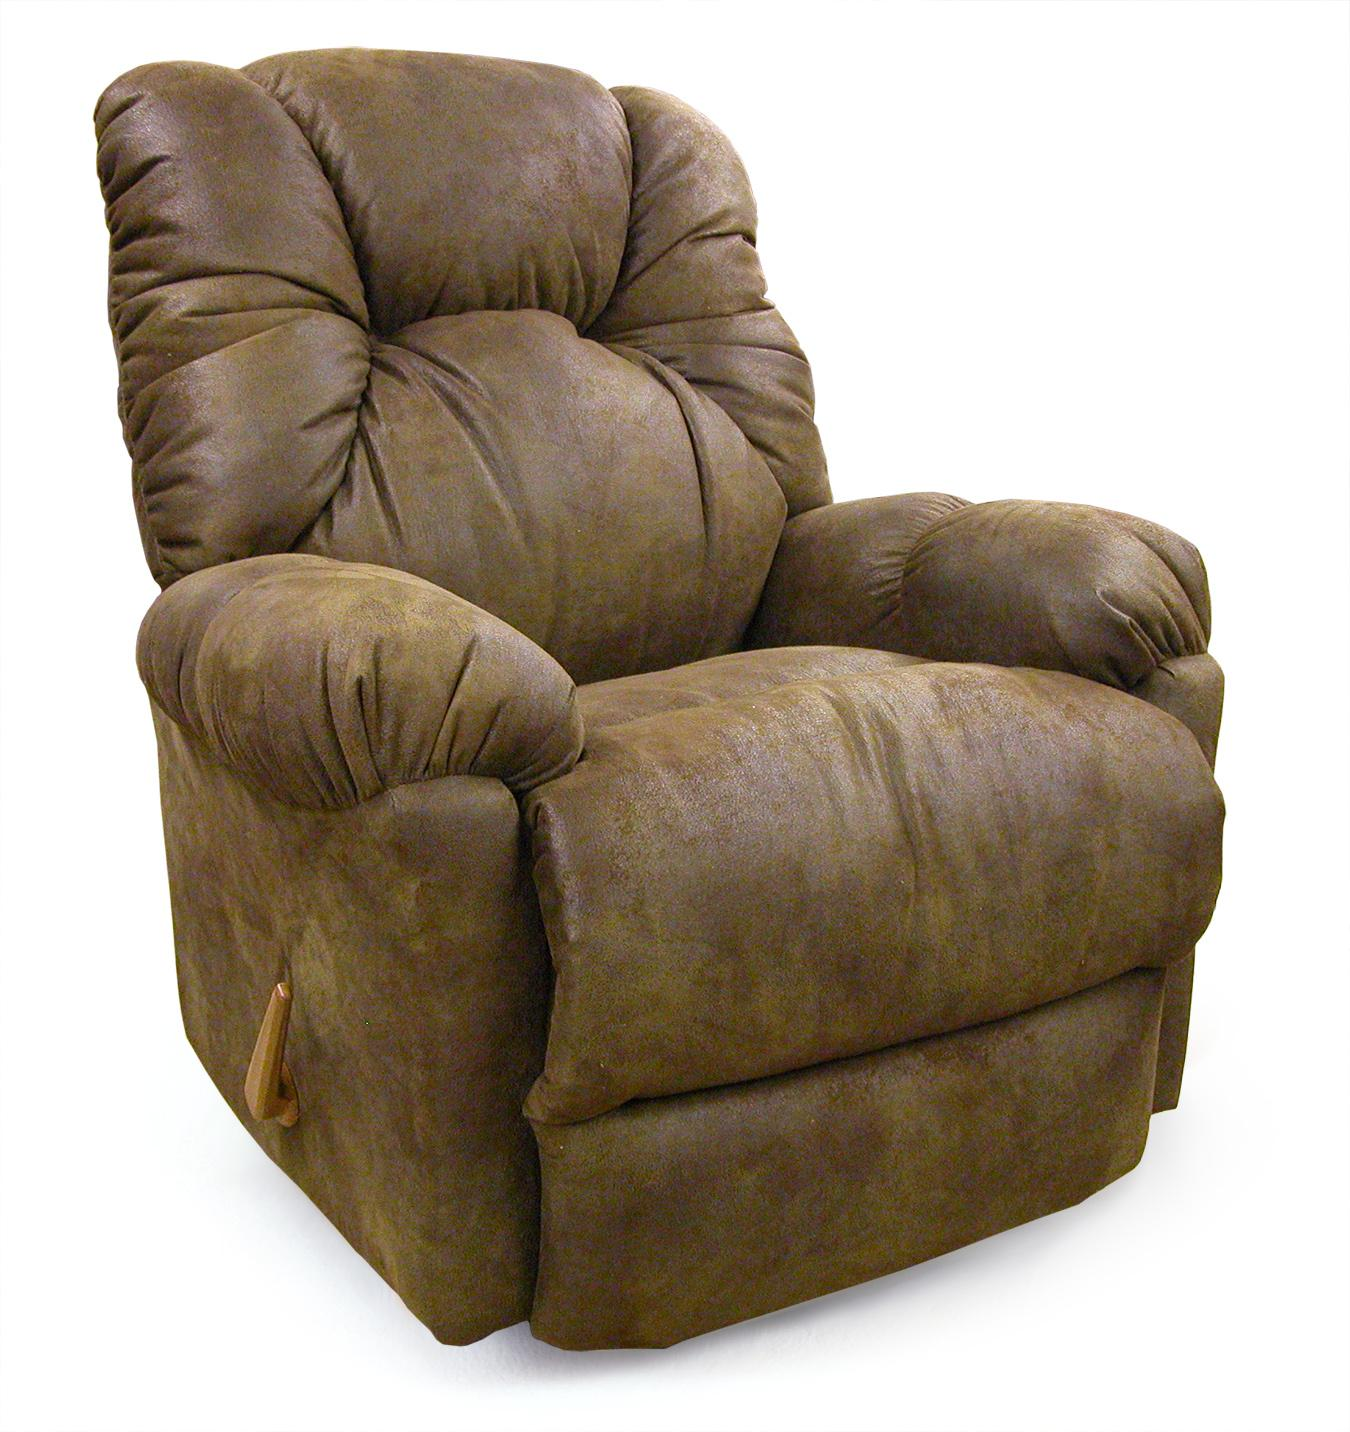 Swivel Recliner Chair Recliners Medium Romulus Swivel Glider Reclining Chair